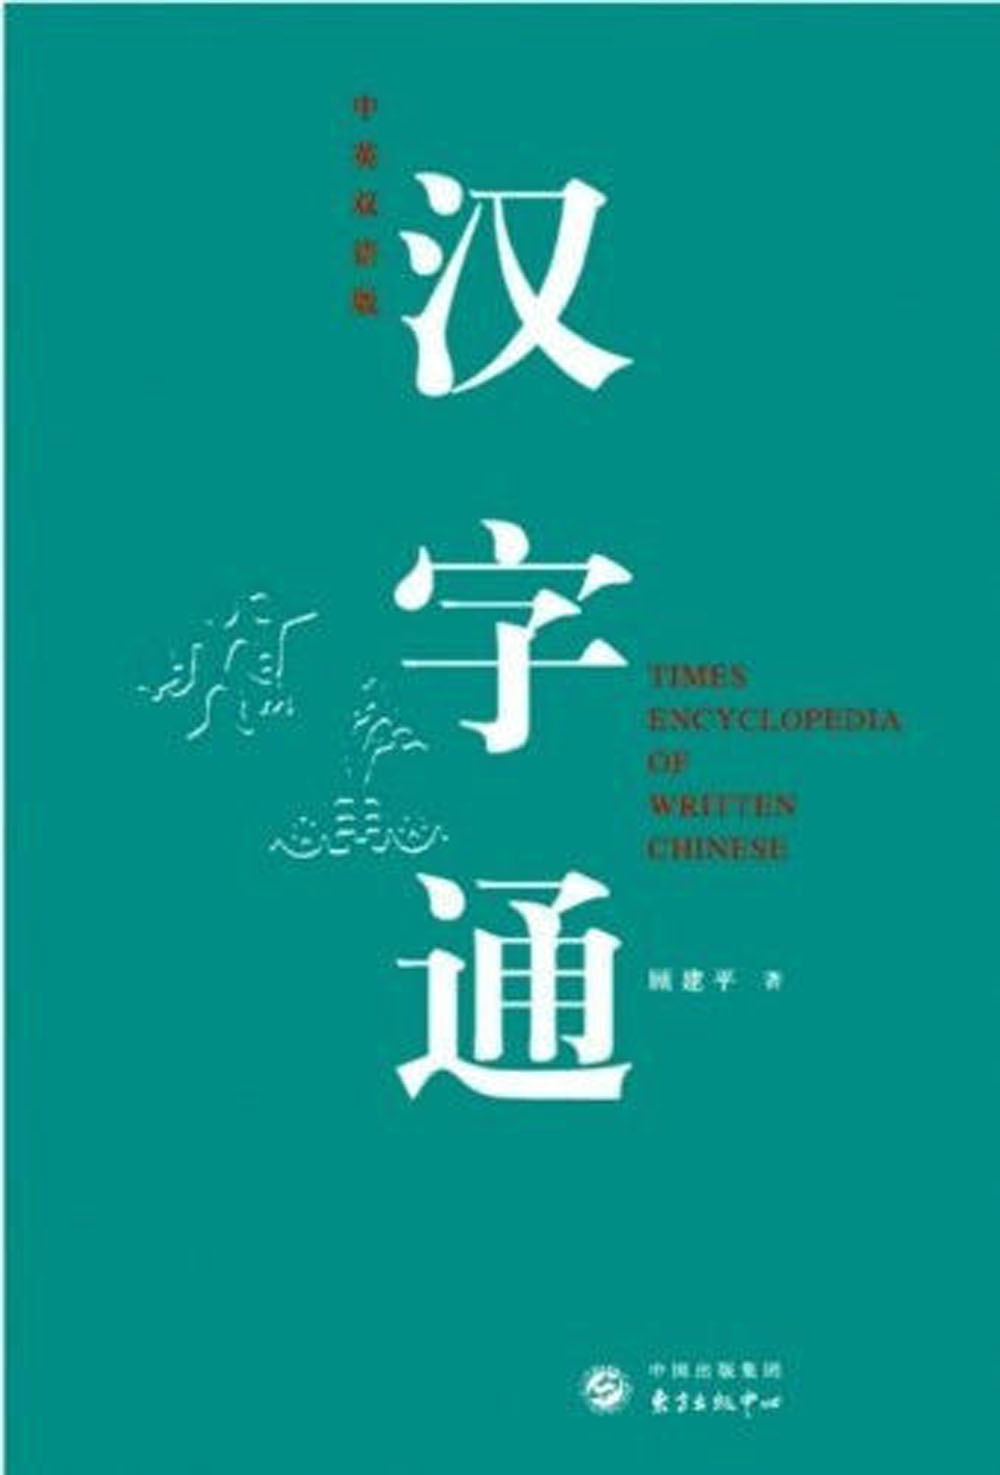 Times Encyclopedia Of Written Chinese In Chinese And English